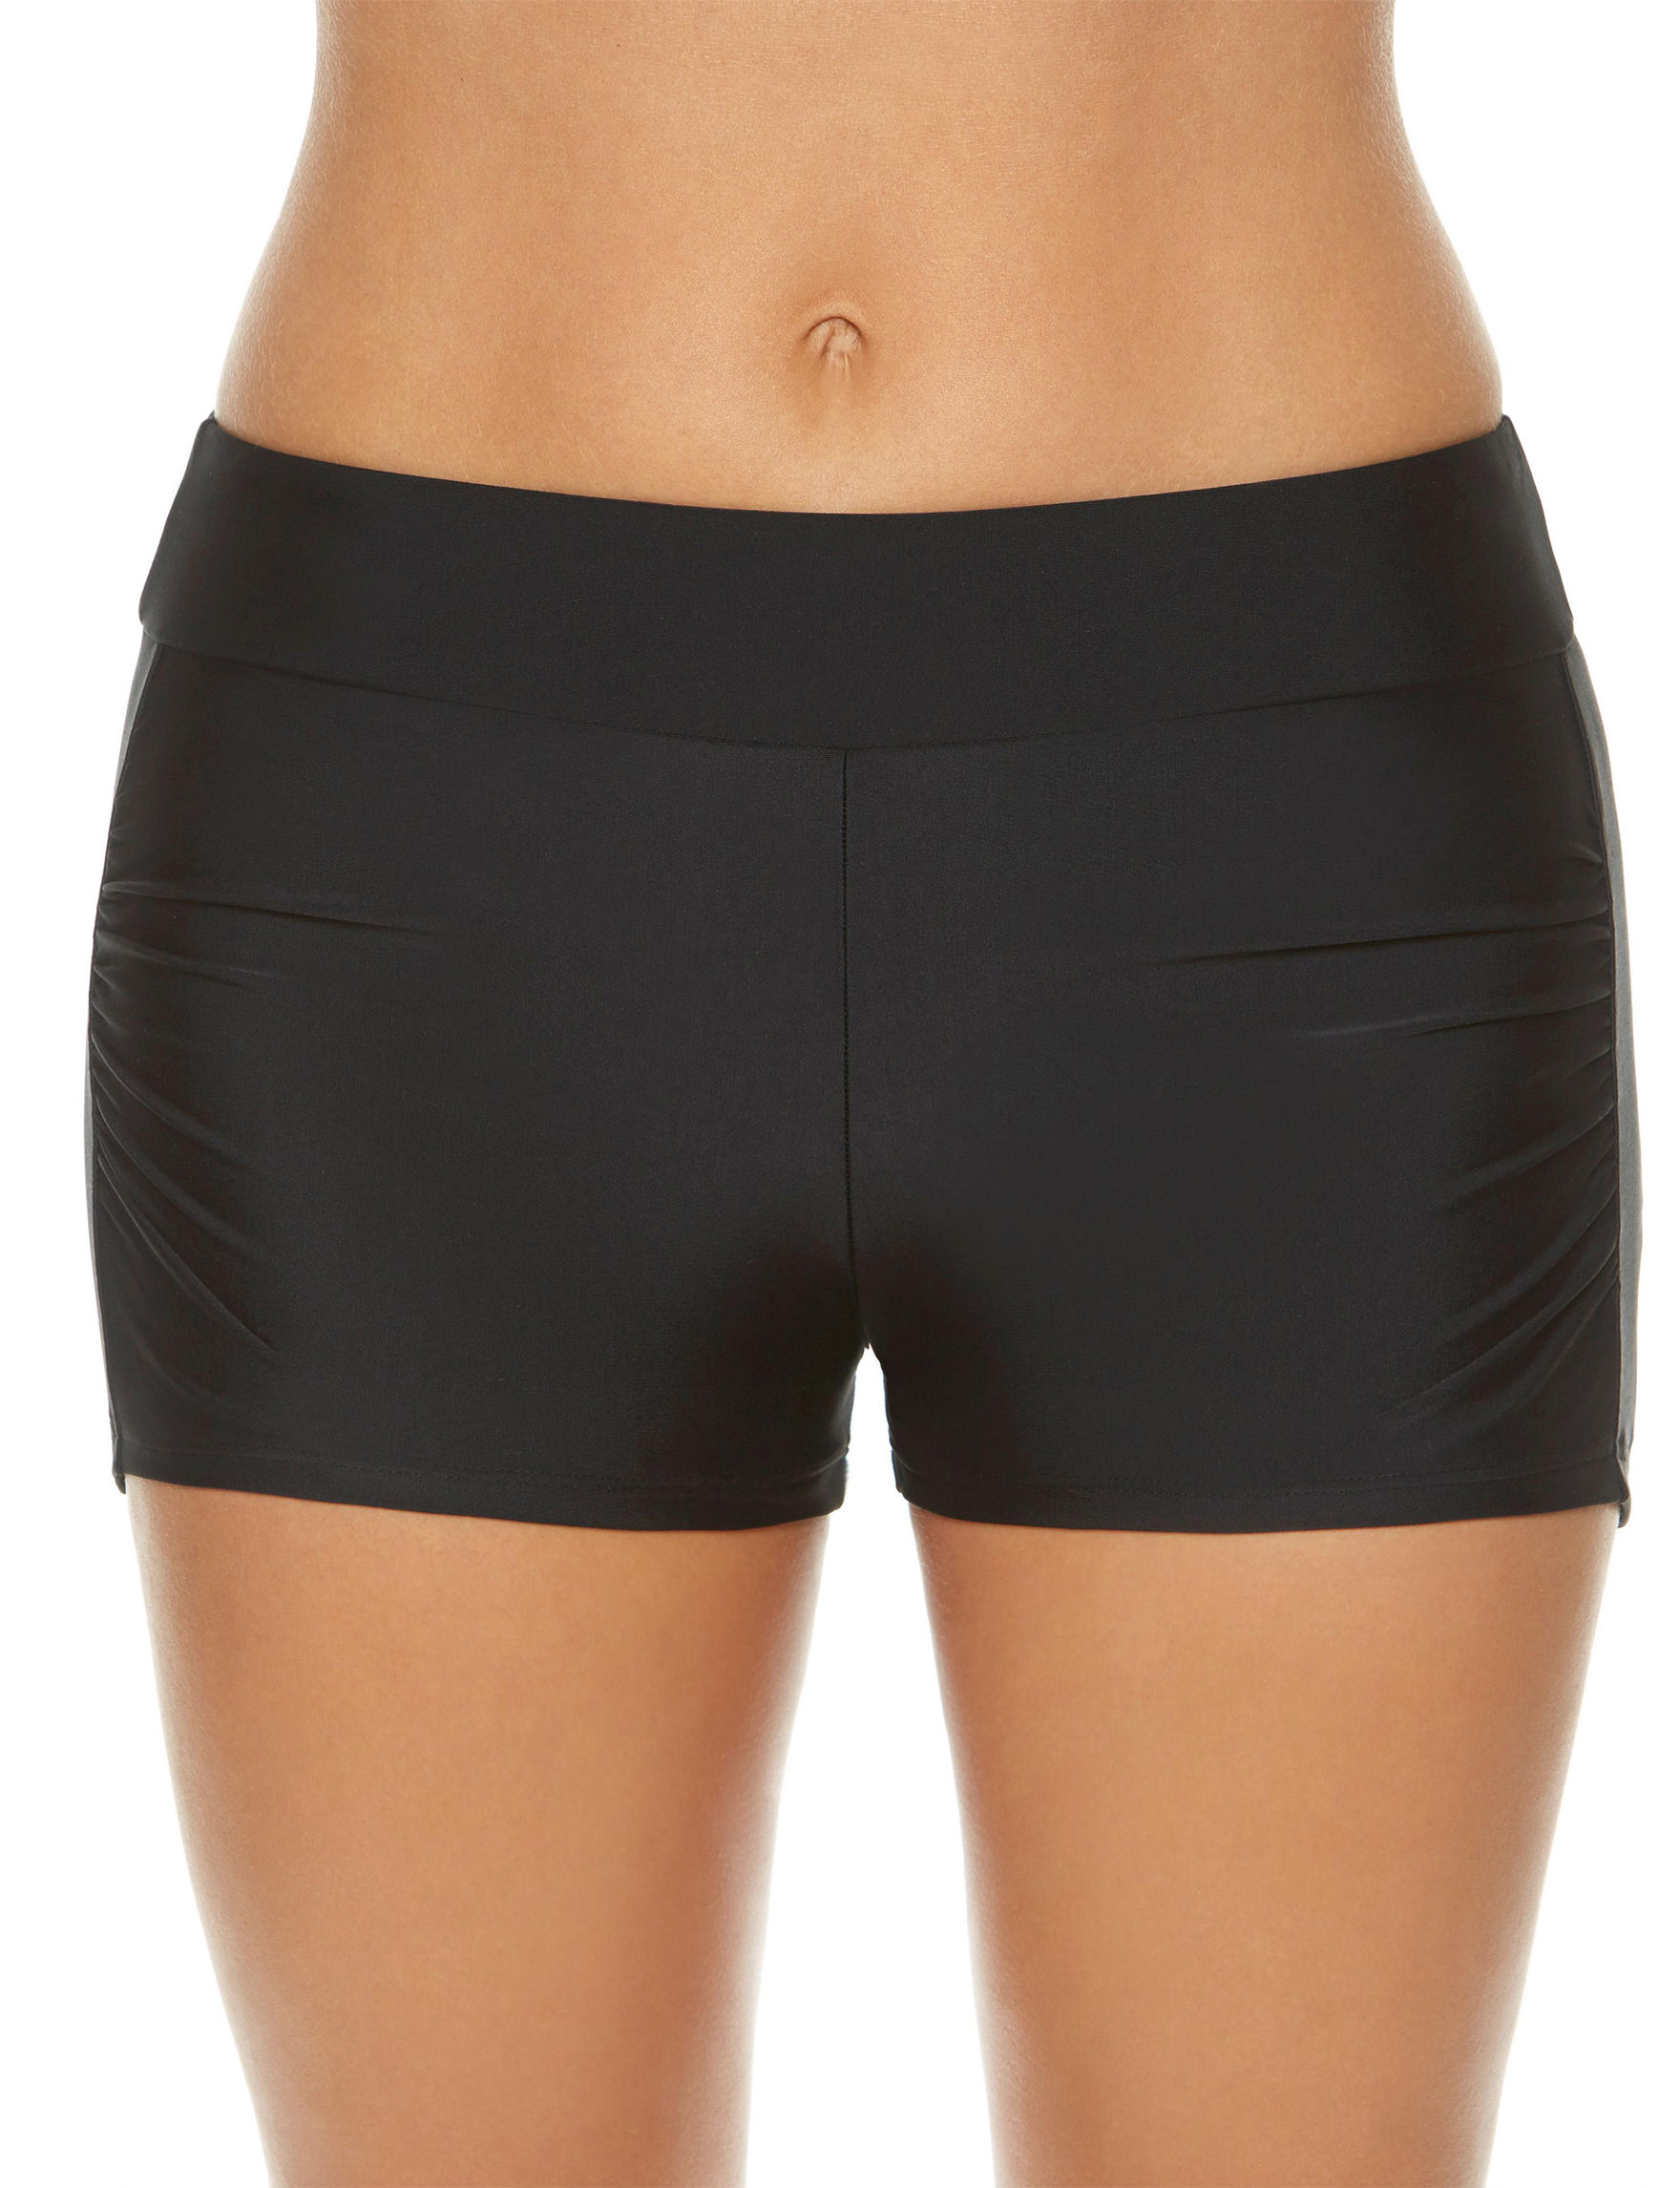 Splashletics Black Swimsuit Bottoms Boyshort